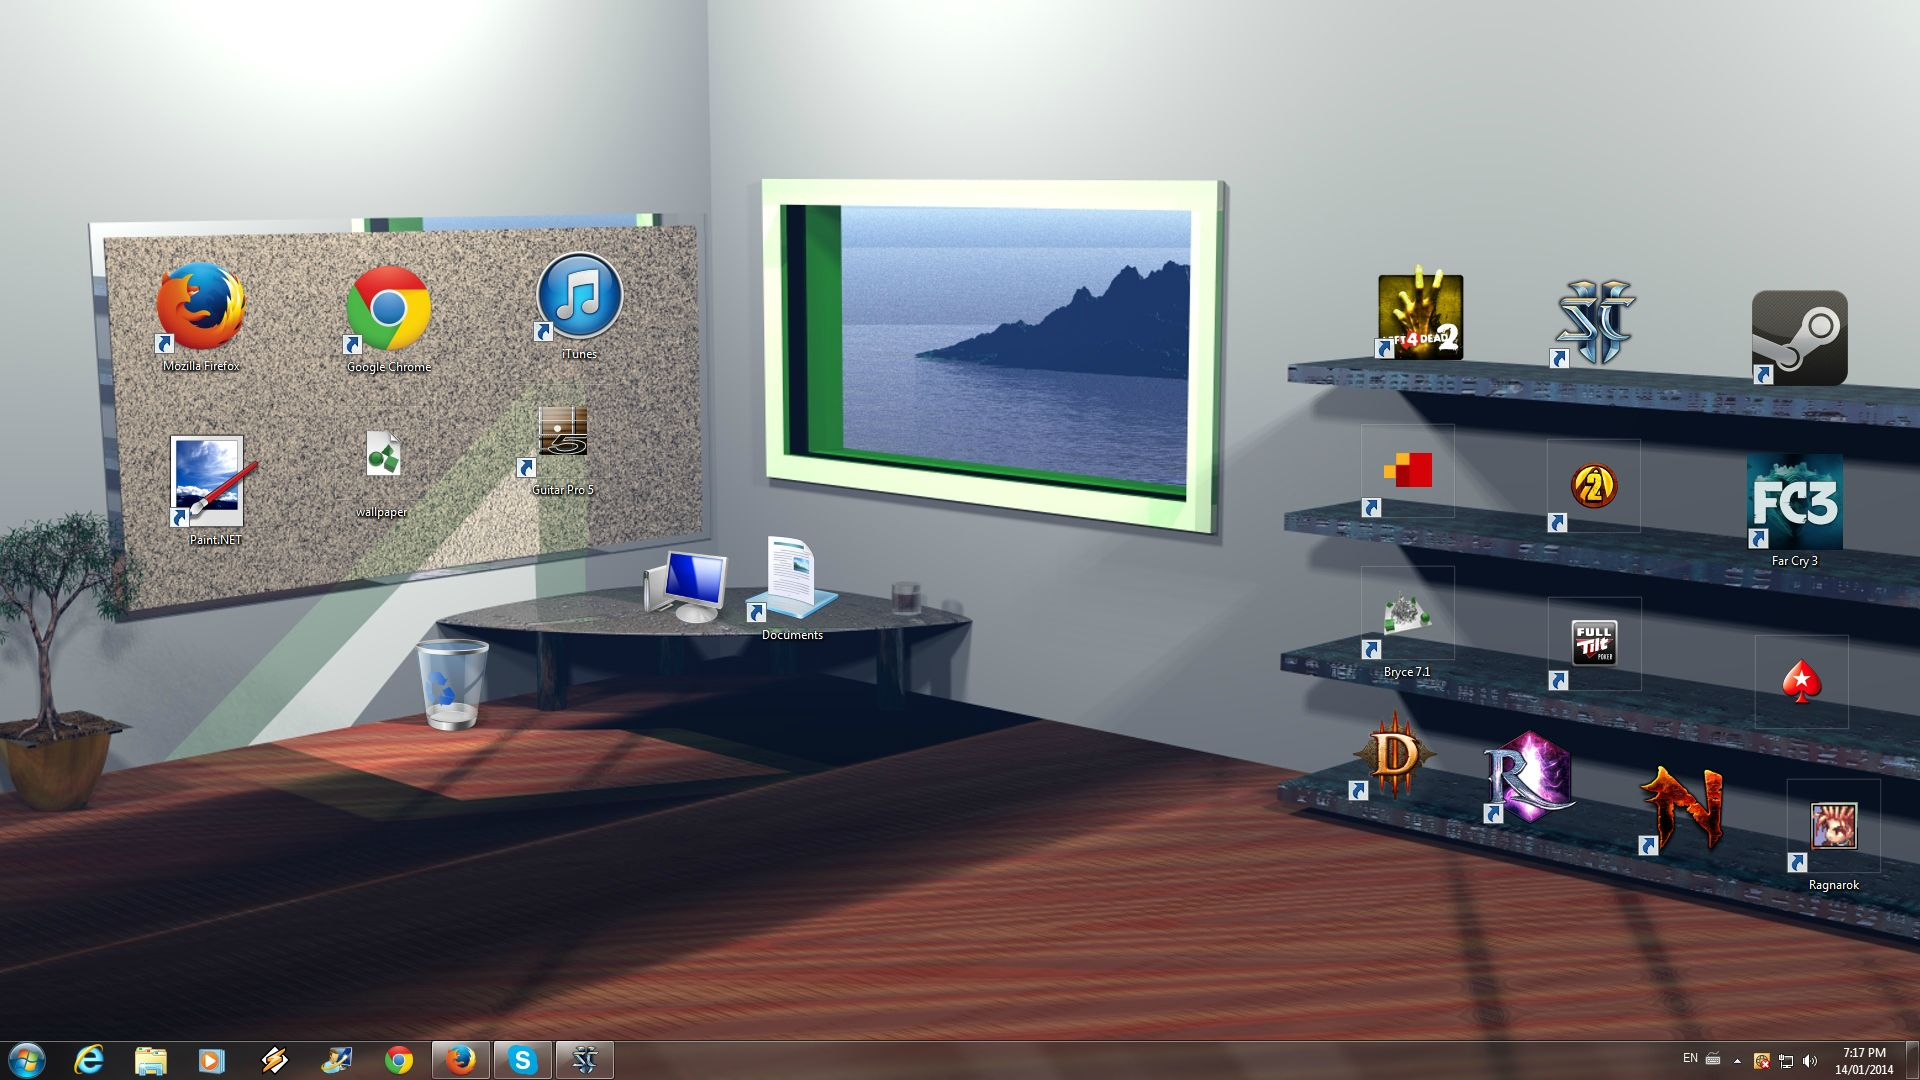 Shelf desktop wallpaper - wallpapersafari.